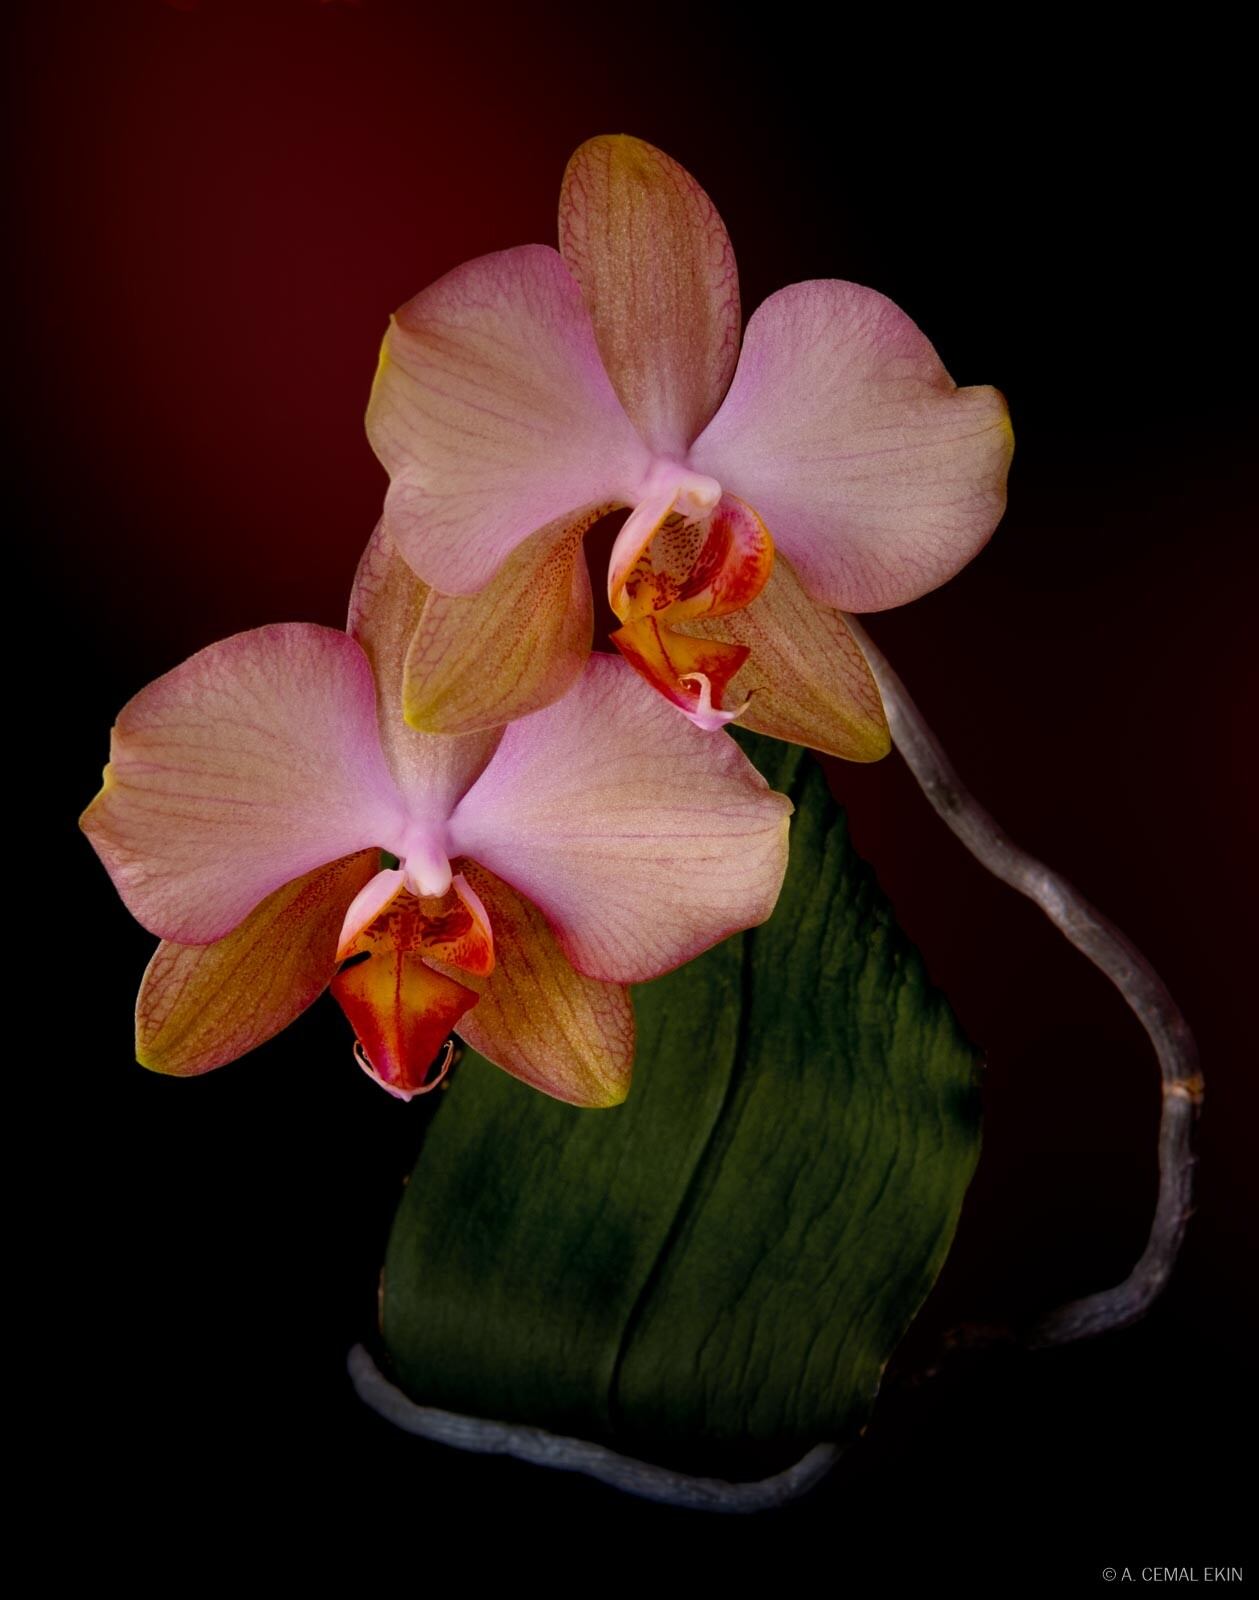 A Pair of Orchid Blossoms